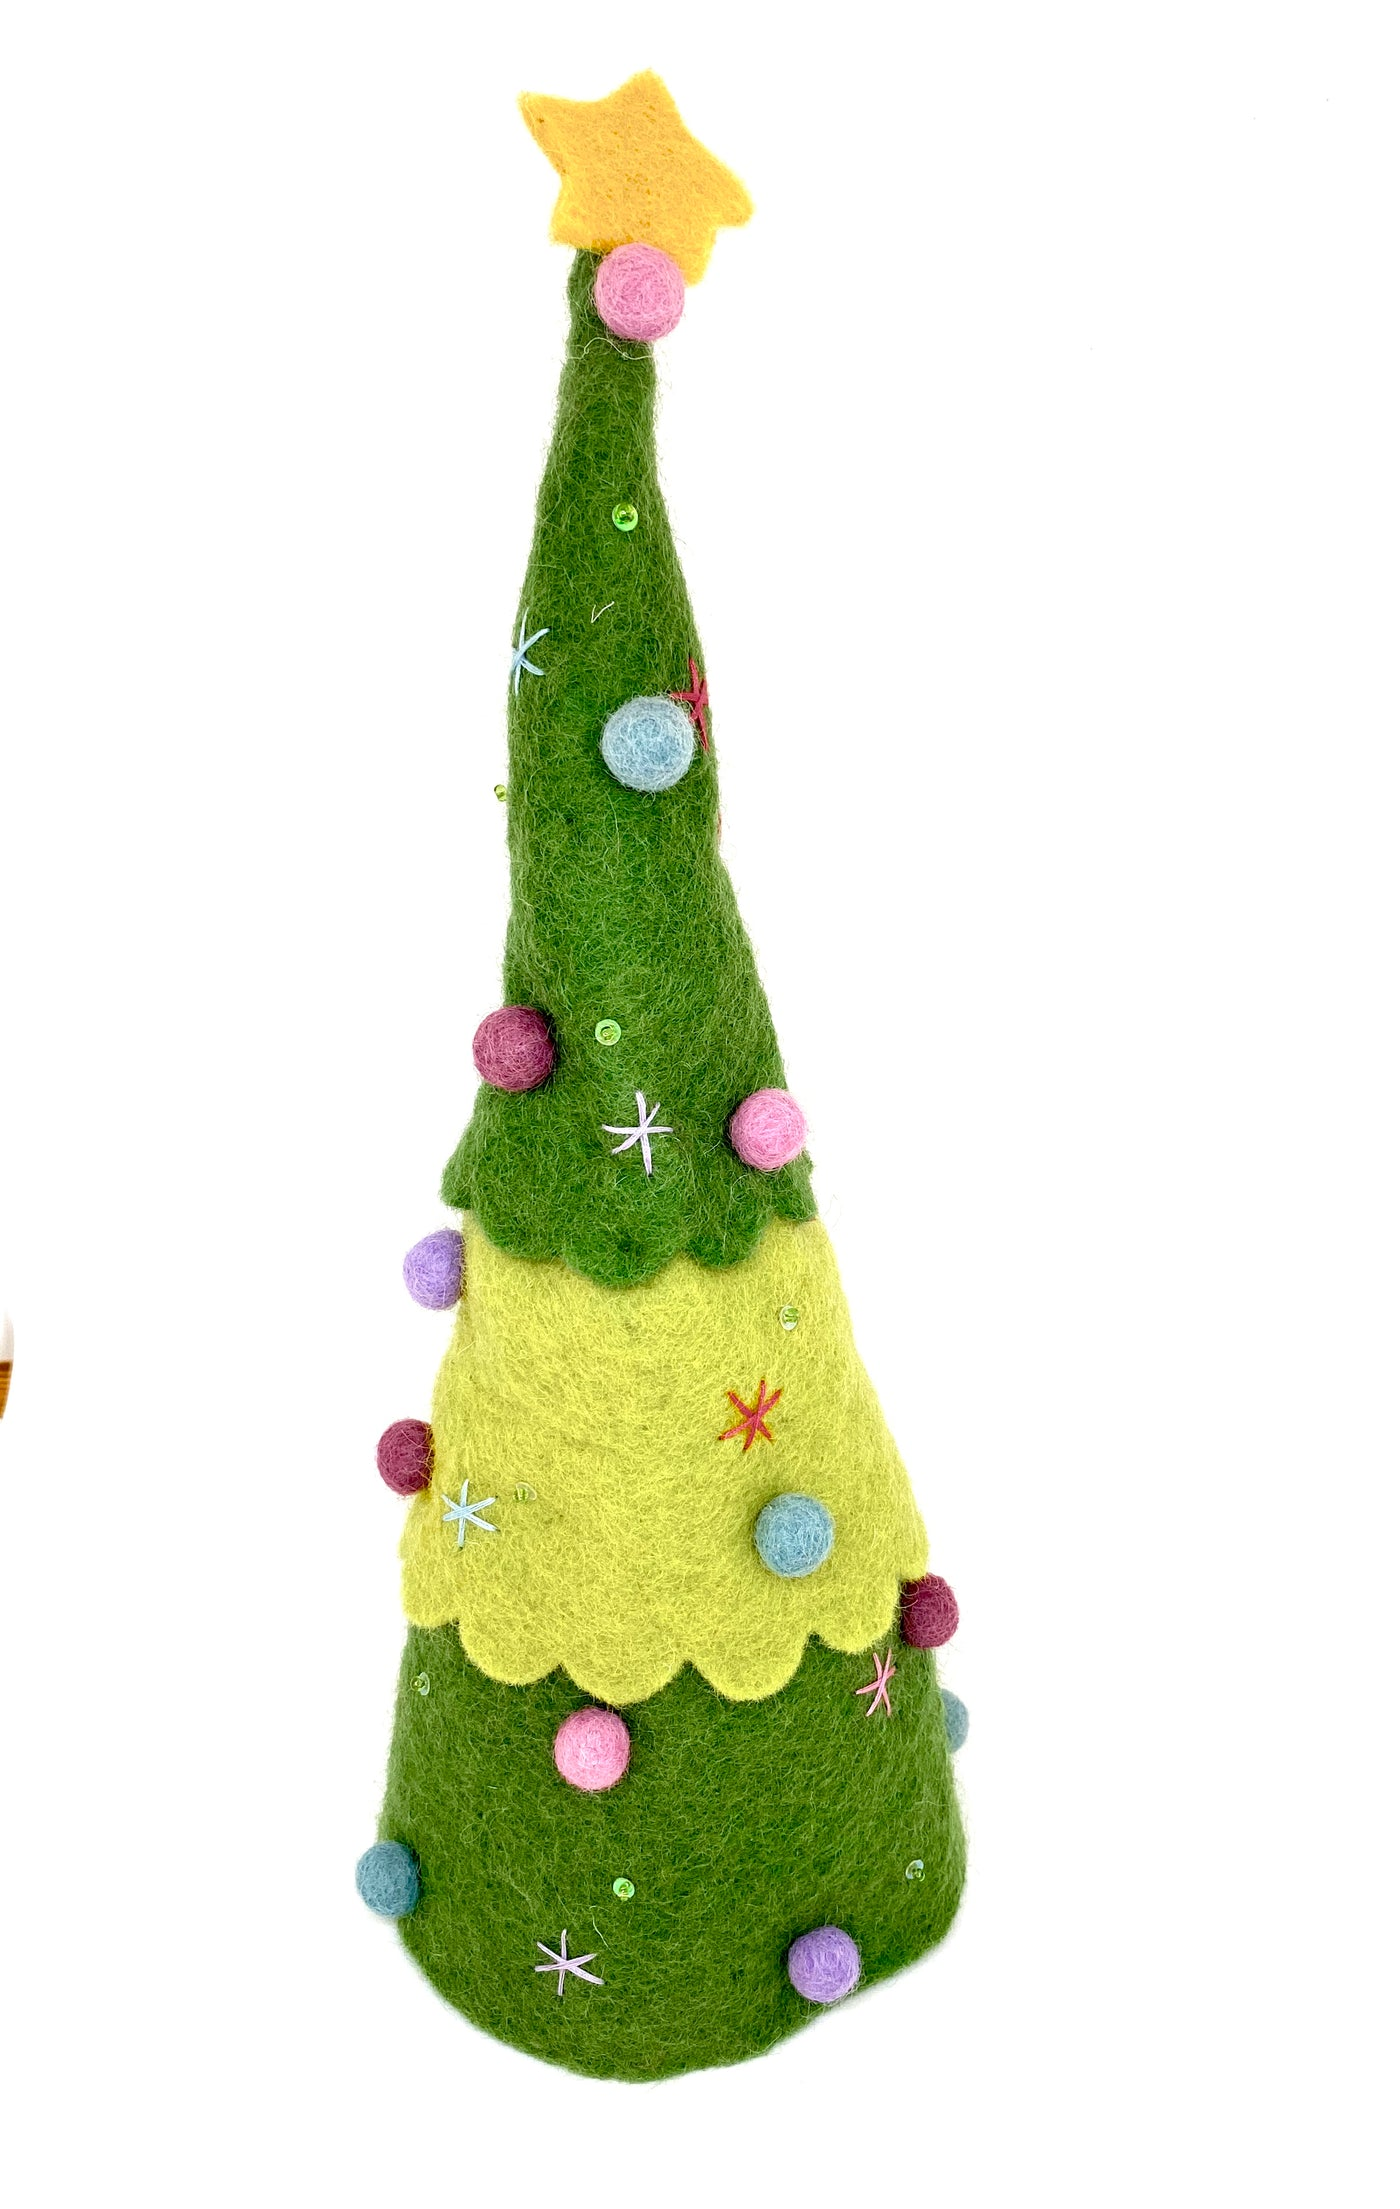 Pashom felt Xmas tree handmade and fair trade